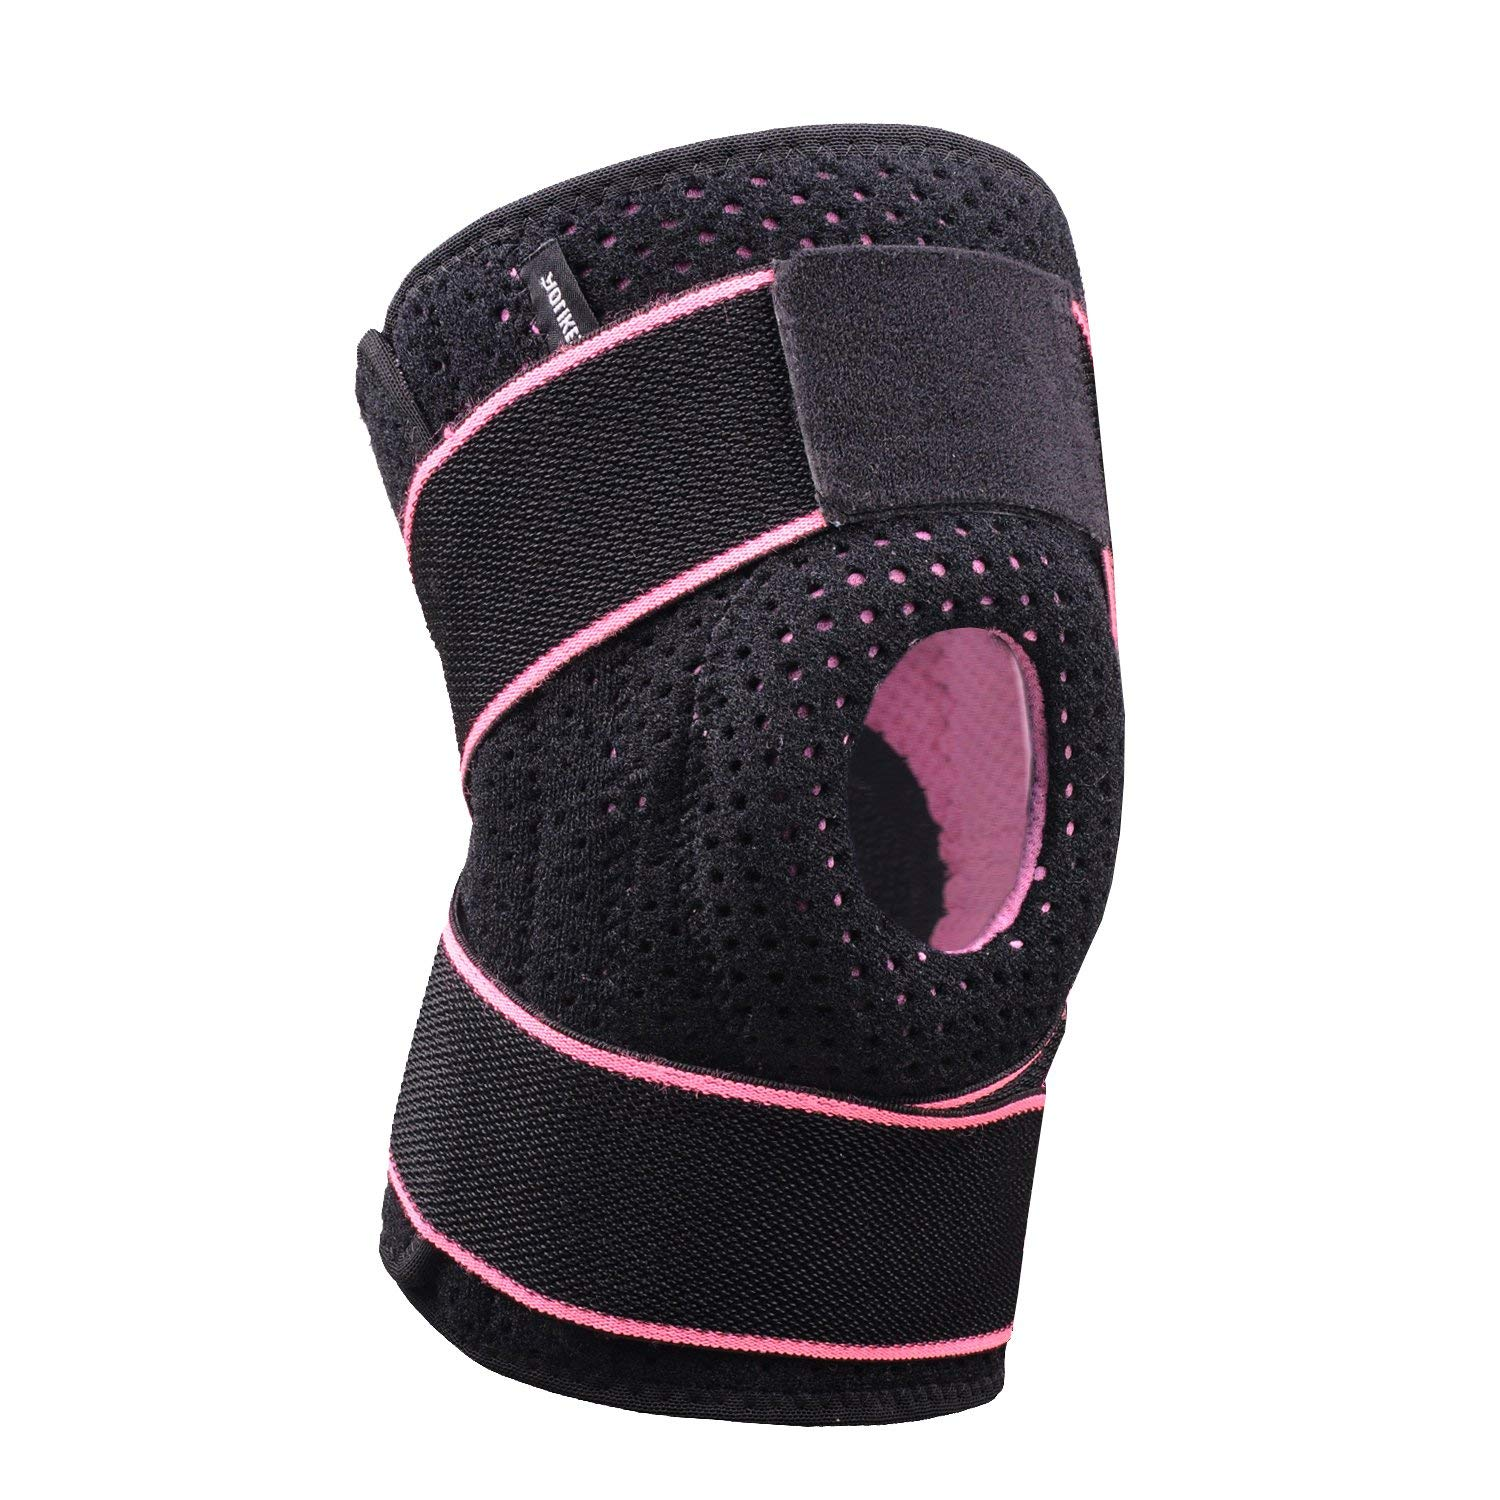 bc37bf4ba1 Details about Knee Brace Support Open Patella Meniscus Tear ACL Tendonitis  Running Football